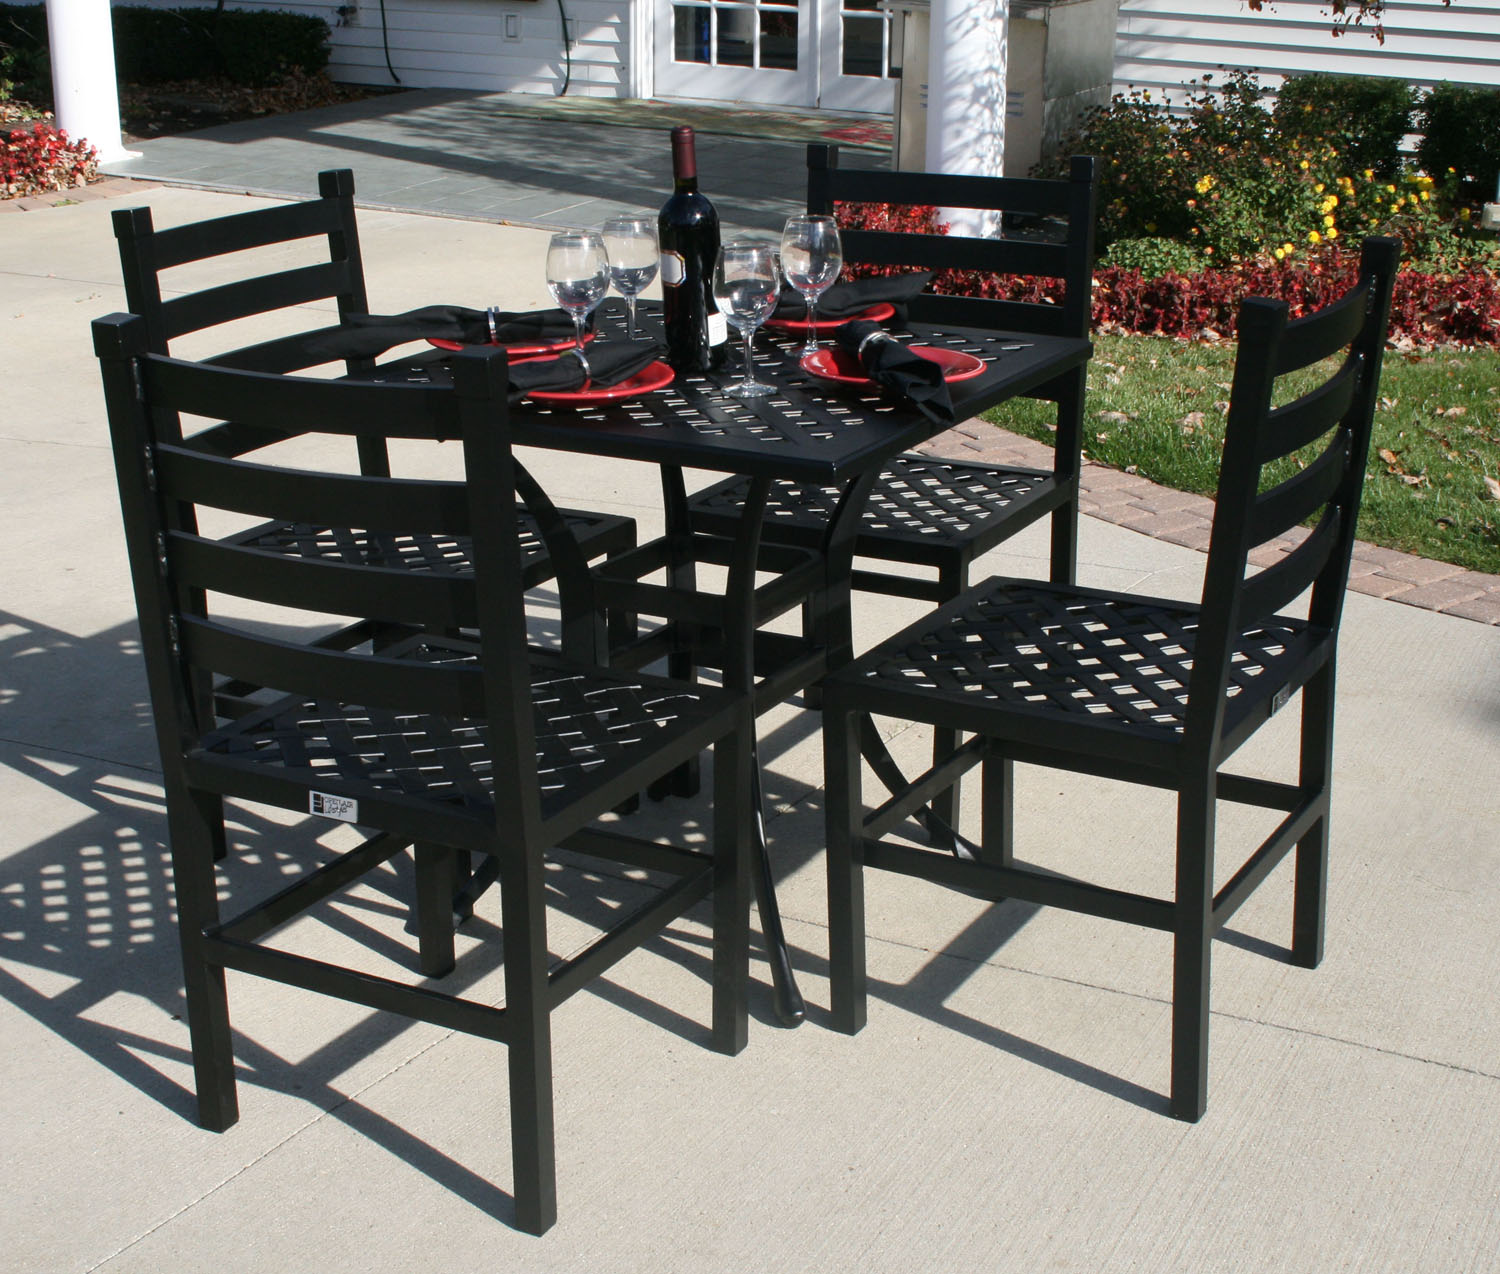 Ansley Luxury 4 Person All Welded Cast Aluminum Patio Furniture Dining Set W 30 Square Table